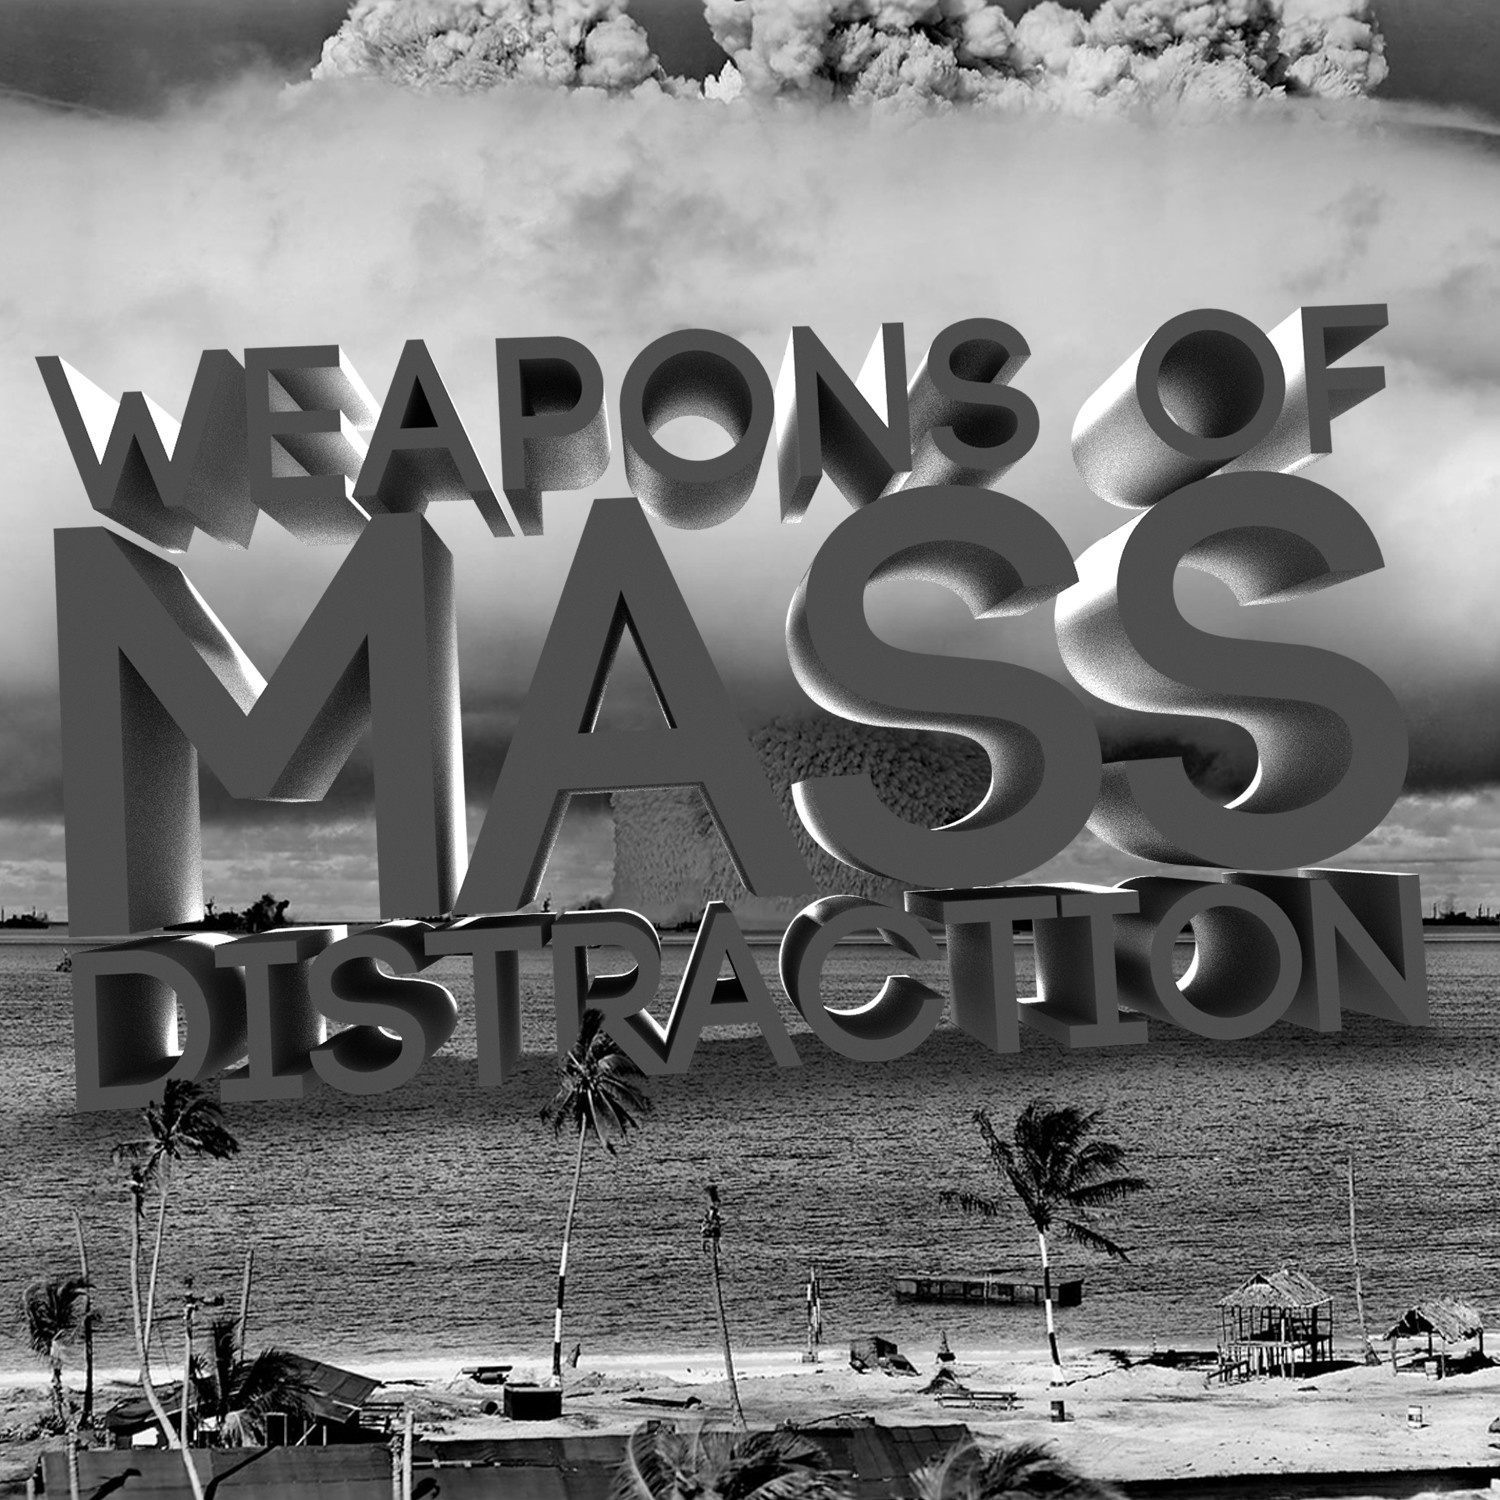 031 - Weapons Of Mass Distraction! By Pastor Jeff Wickwire | LT03517-1